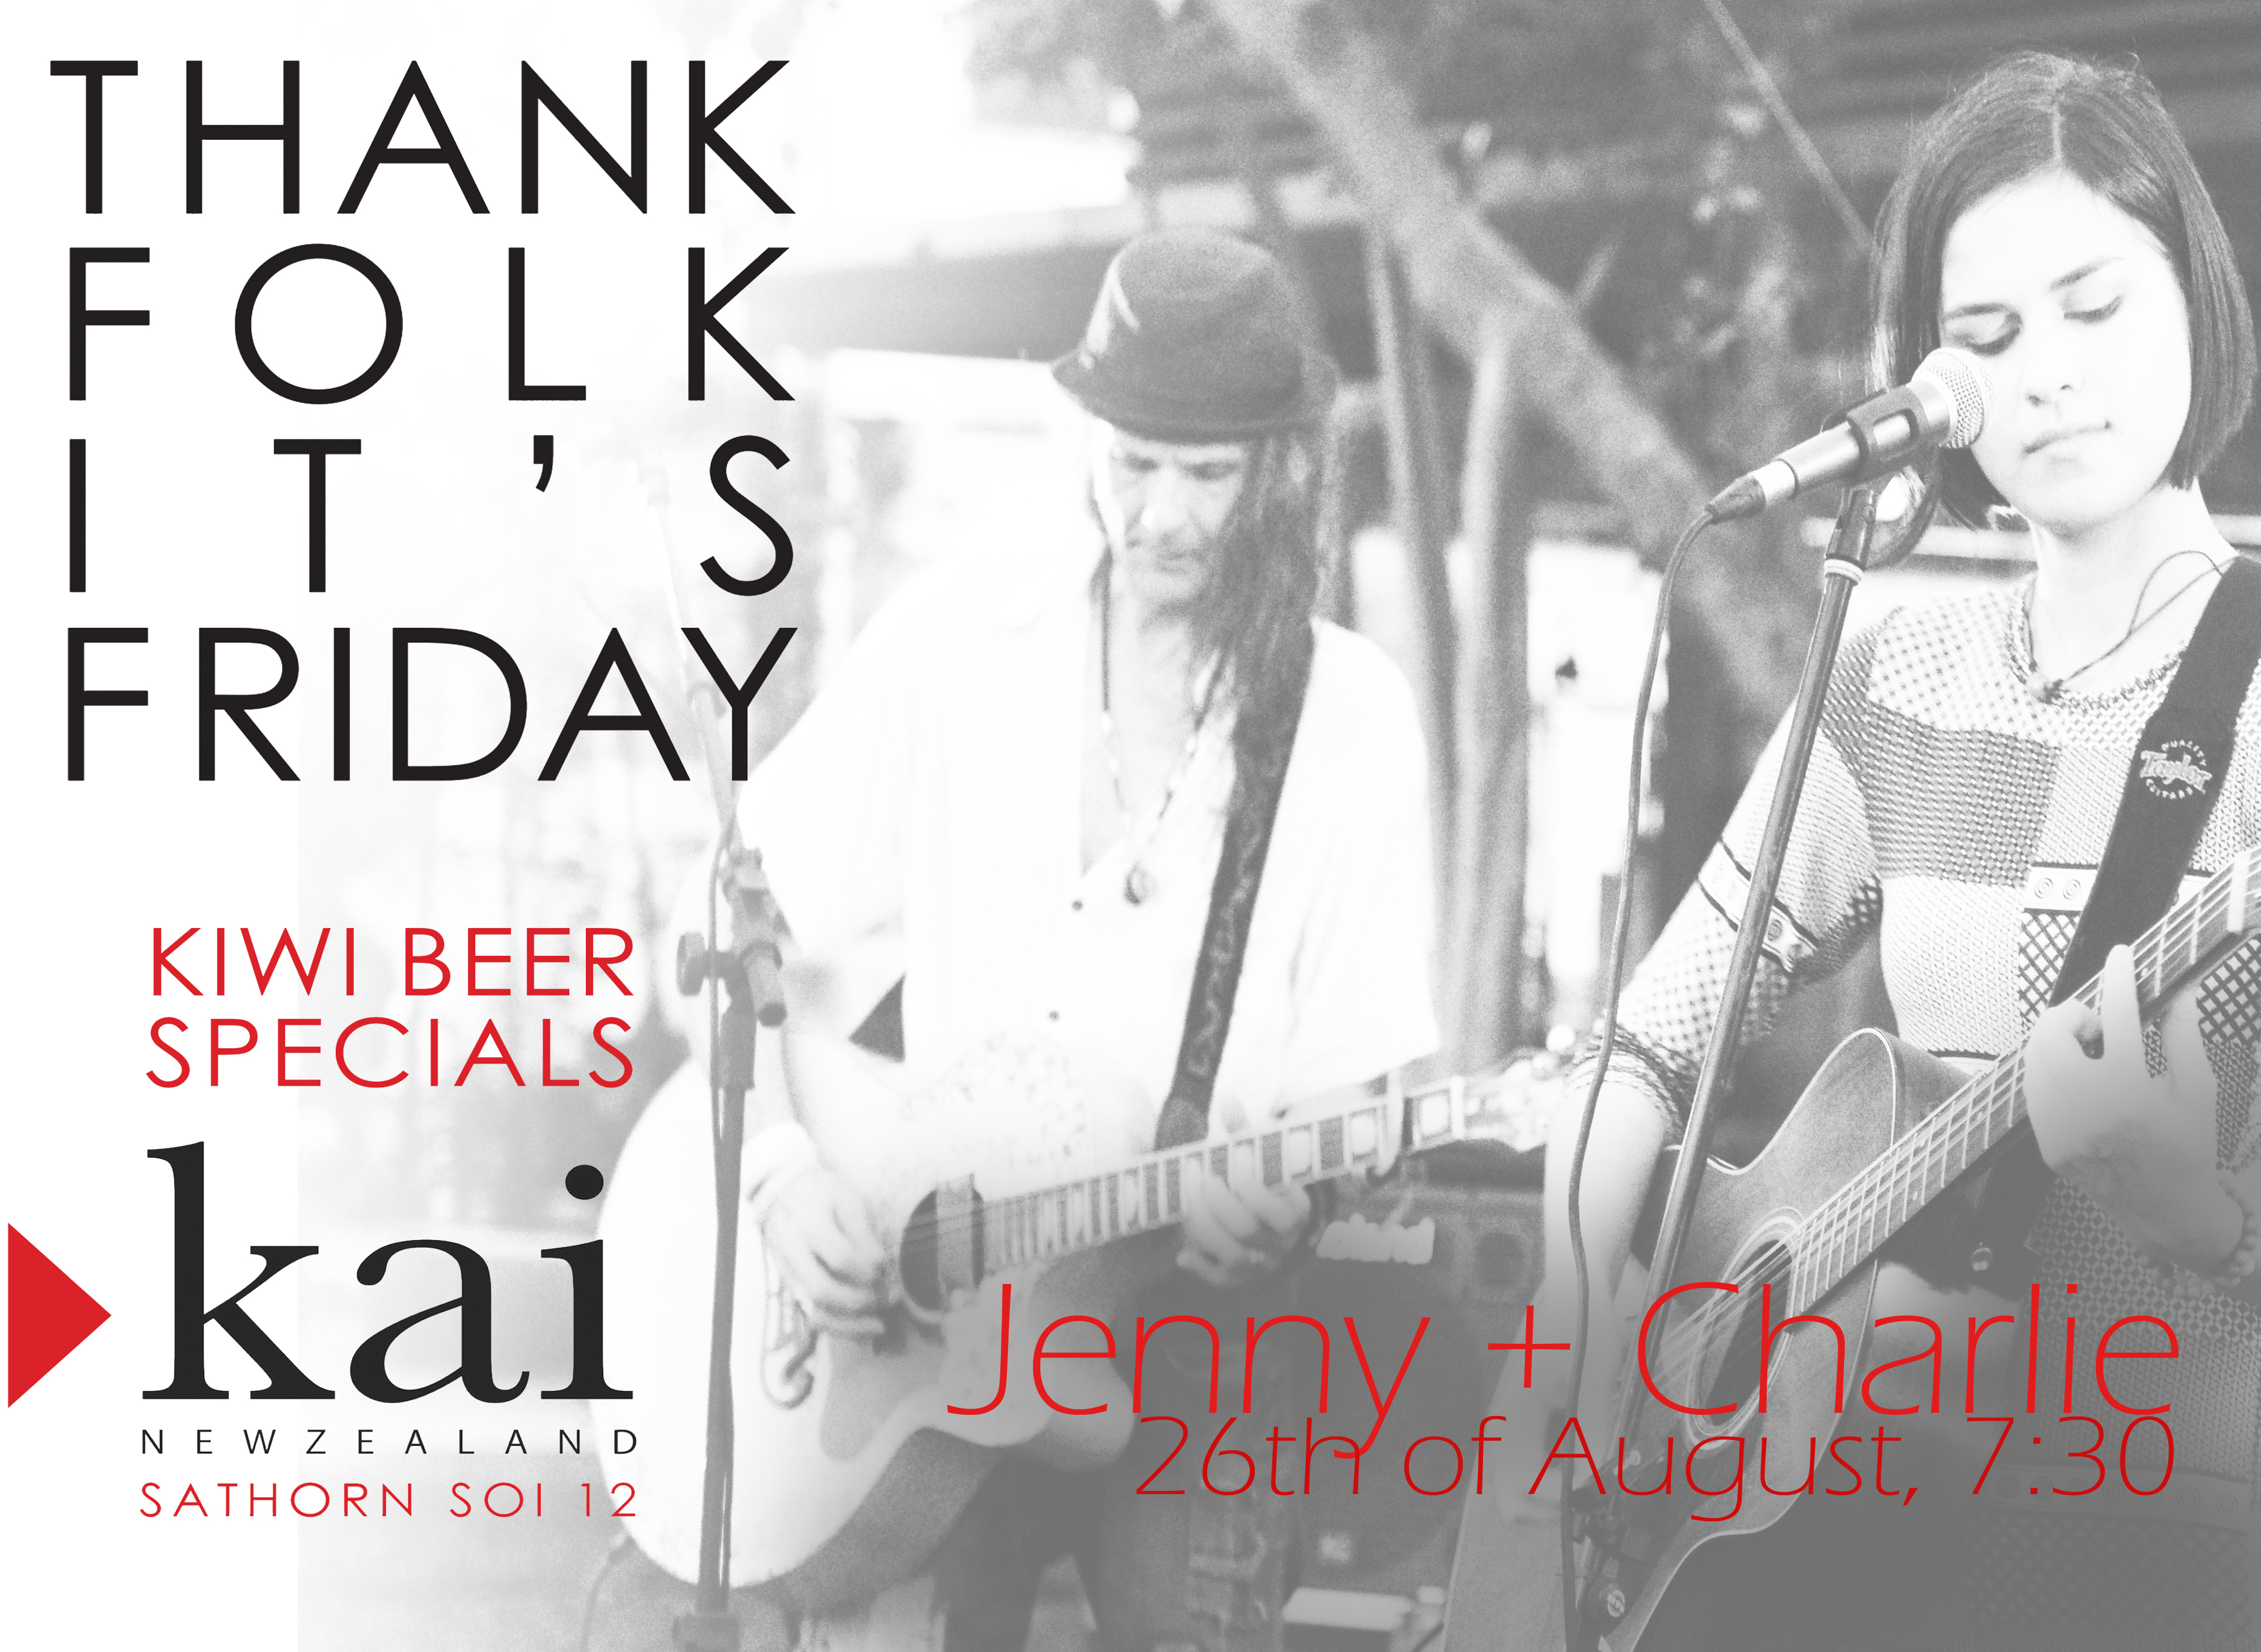 Jenny and Charlie 26th August Large